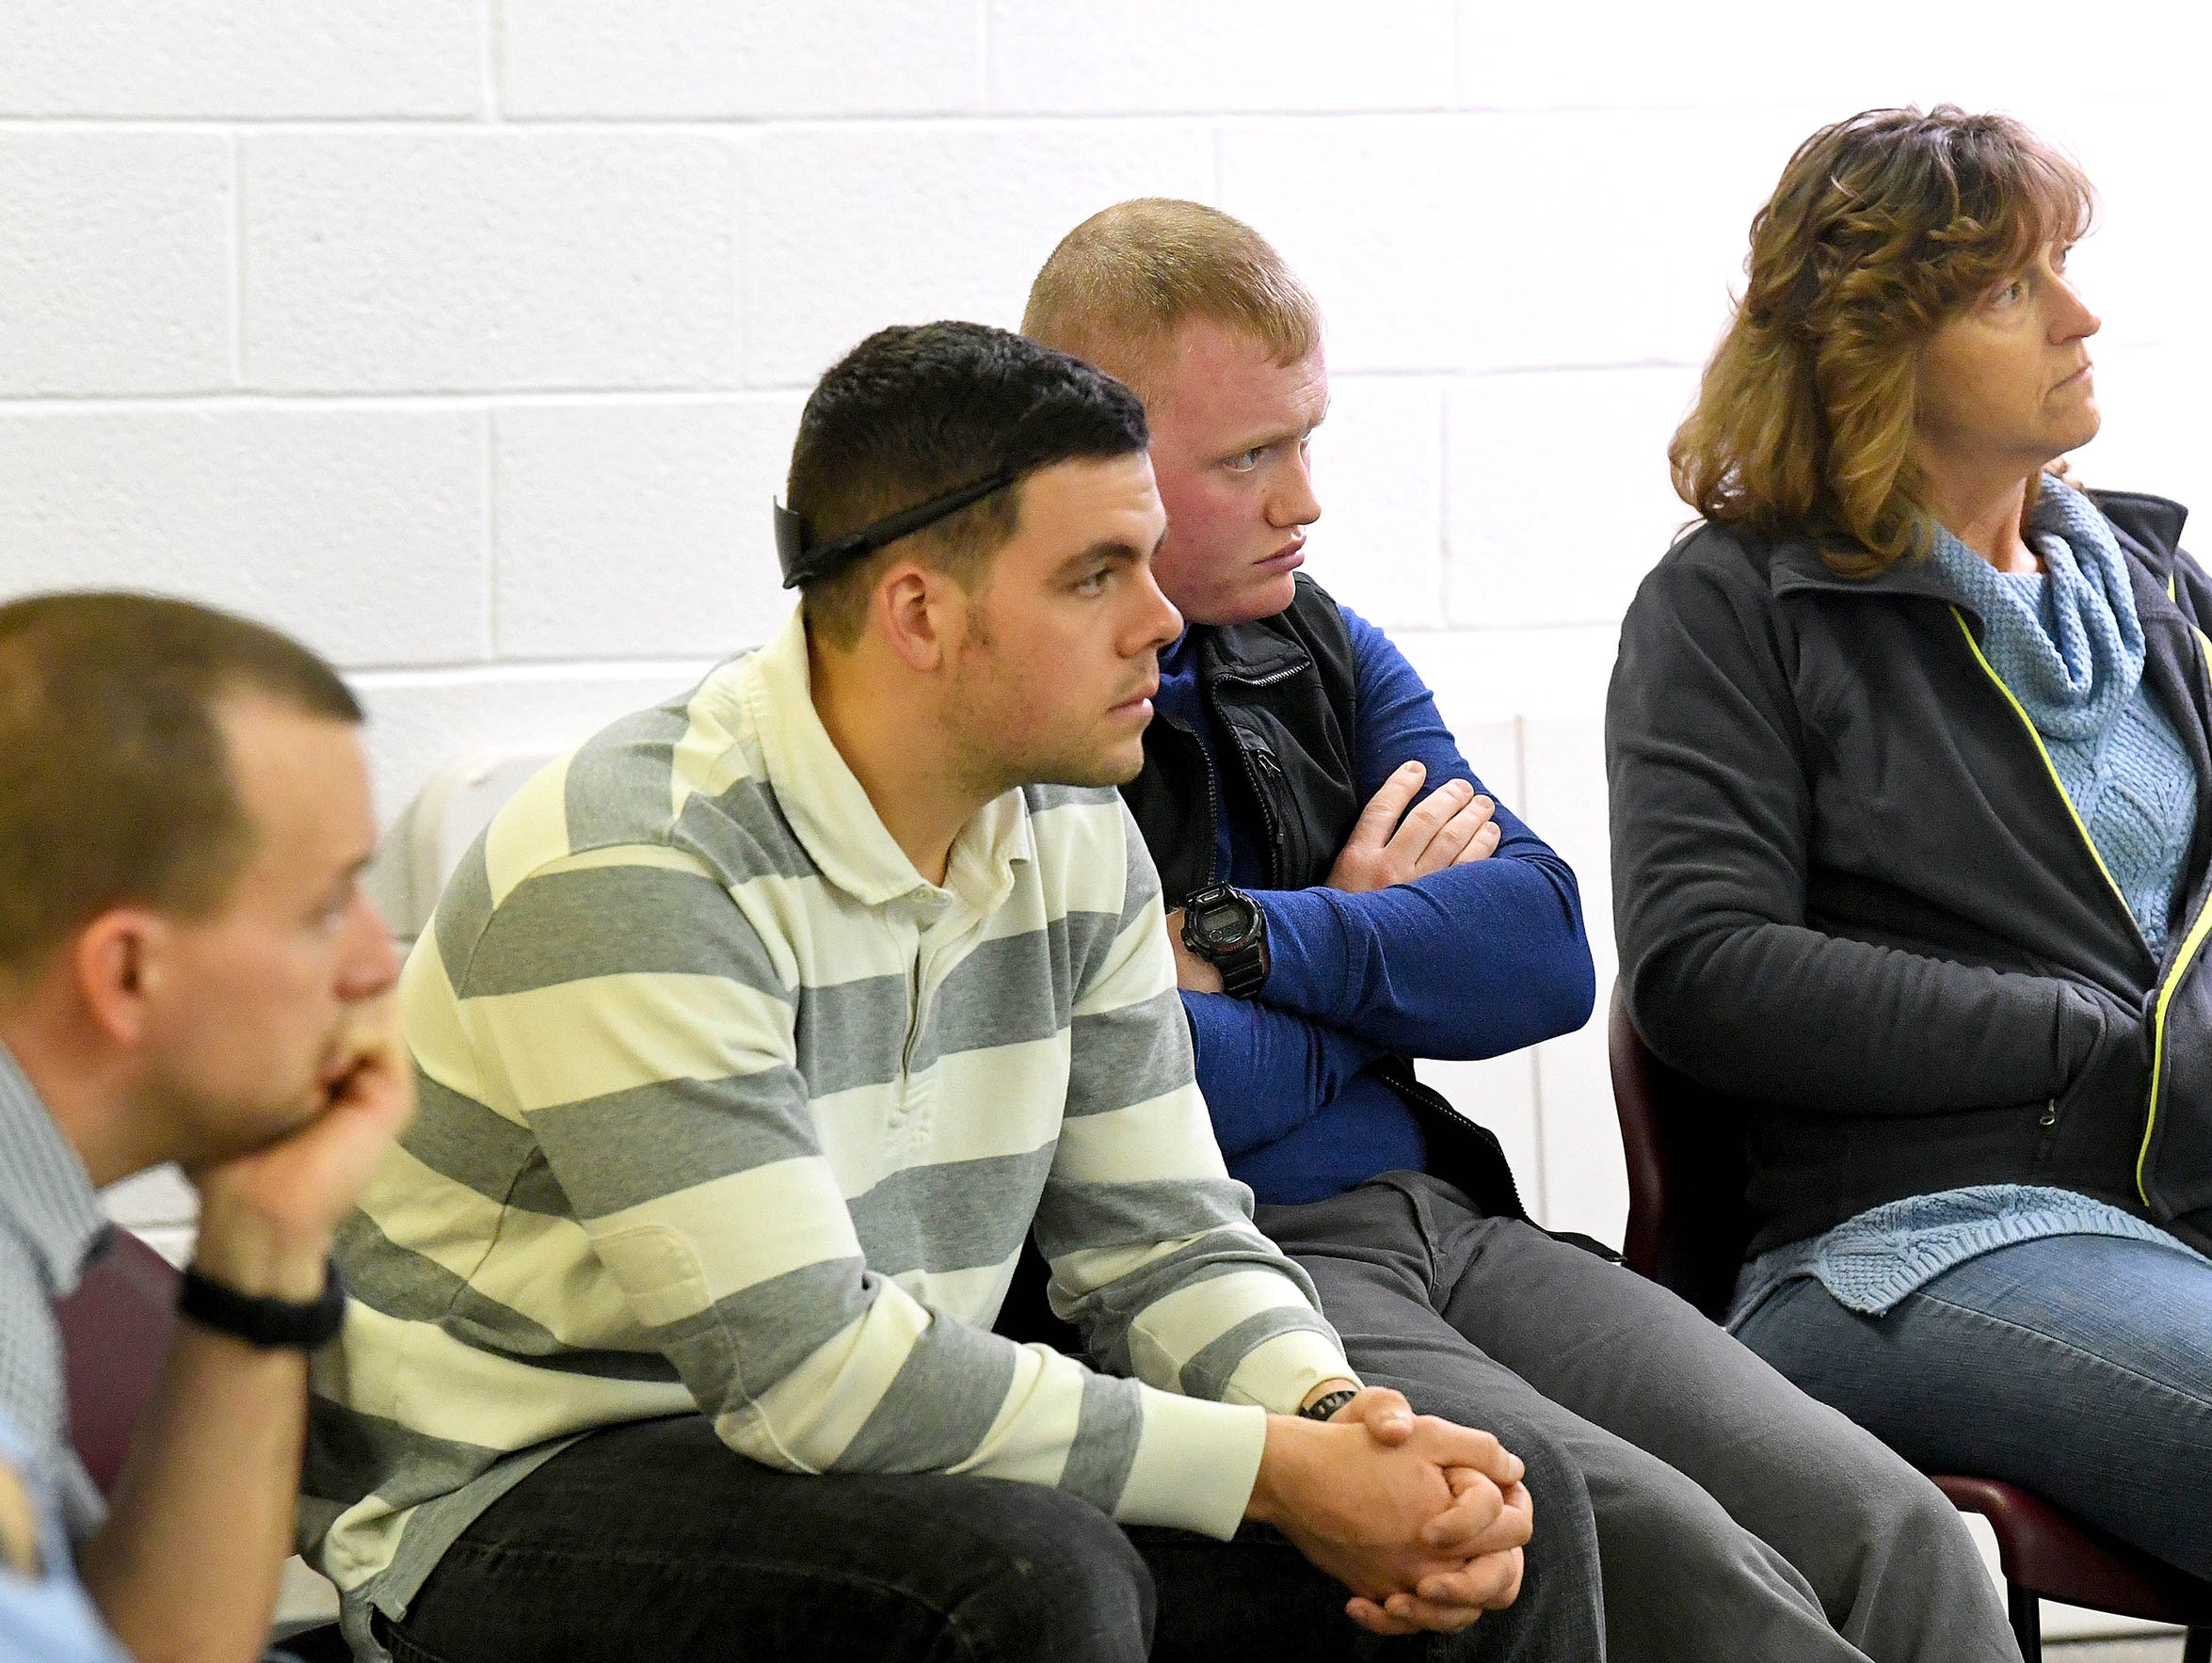 Participants observe as other students try to deescalate